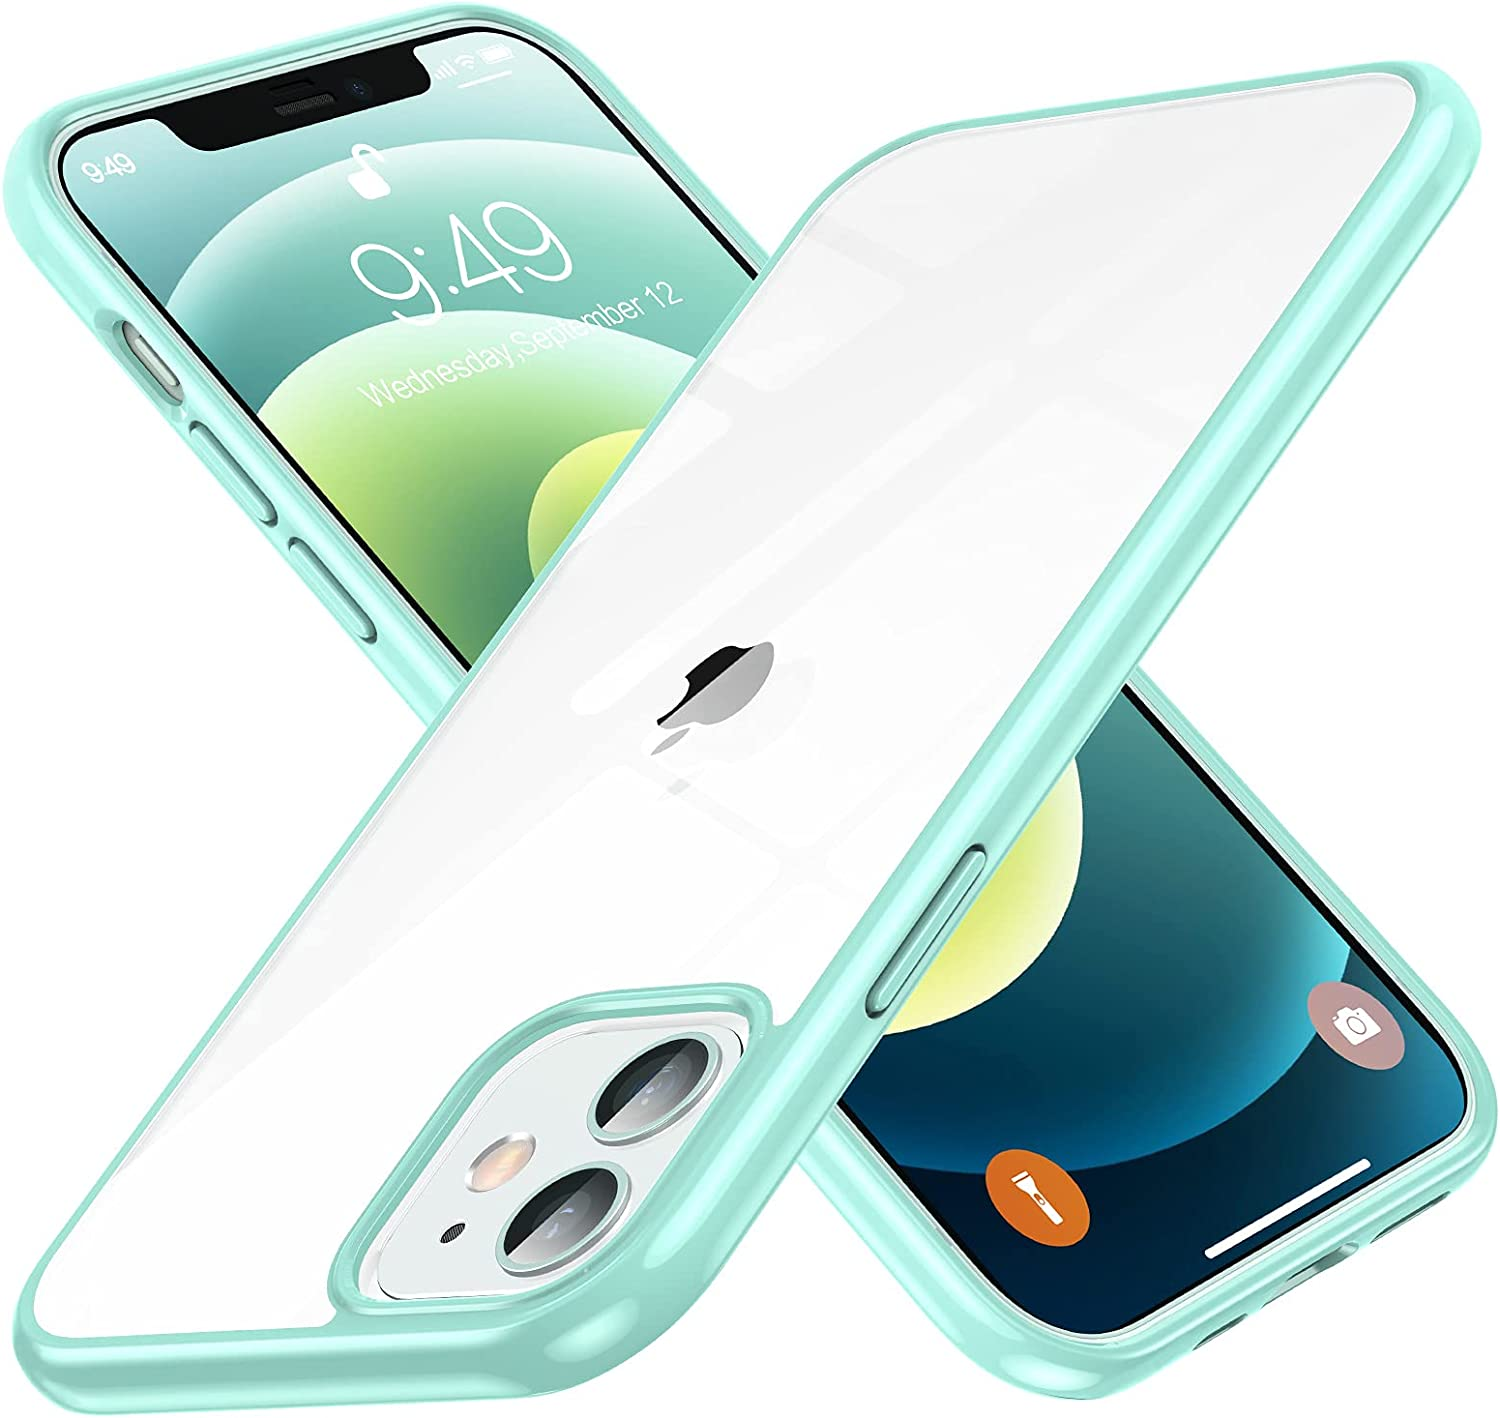 Humixx Designed for iPhone 12 Mini Case,Diamond Crystal Clear Case, [20X Anti-Yellowing] [Military Grade Drop Protection] Hard PC Back with Soft TPU Bumper Slim Thin Case for iPhone 12 Mini-Aqua Green